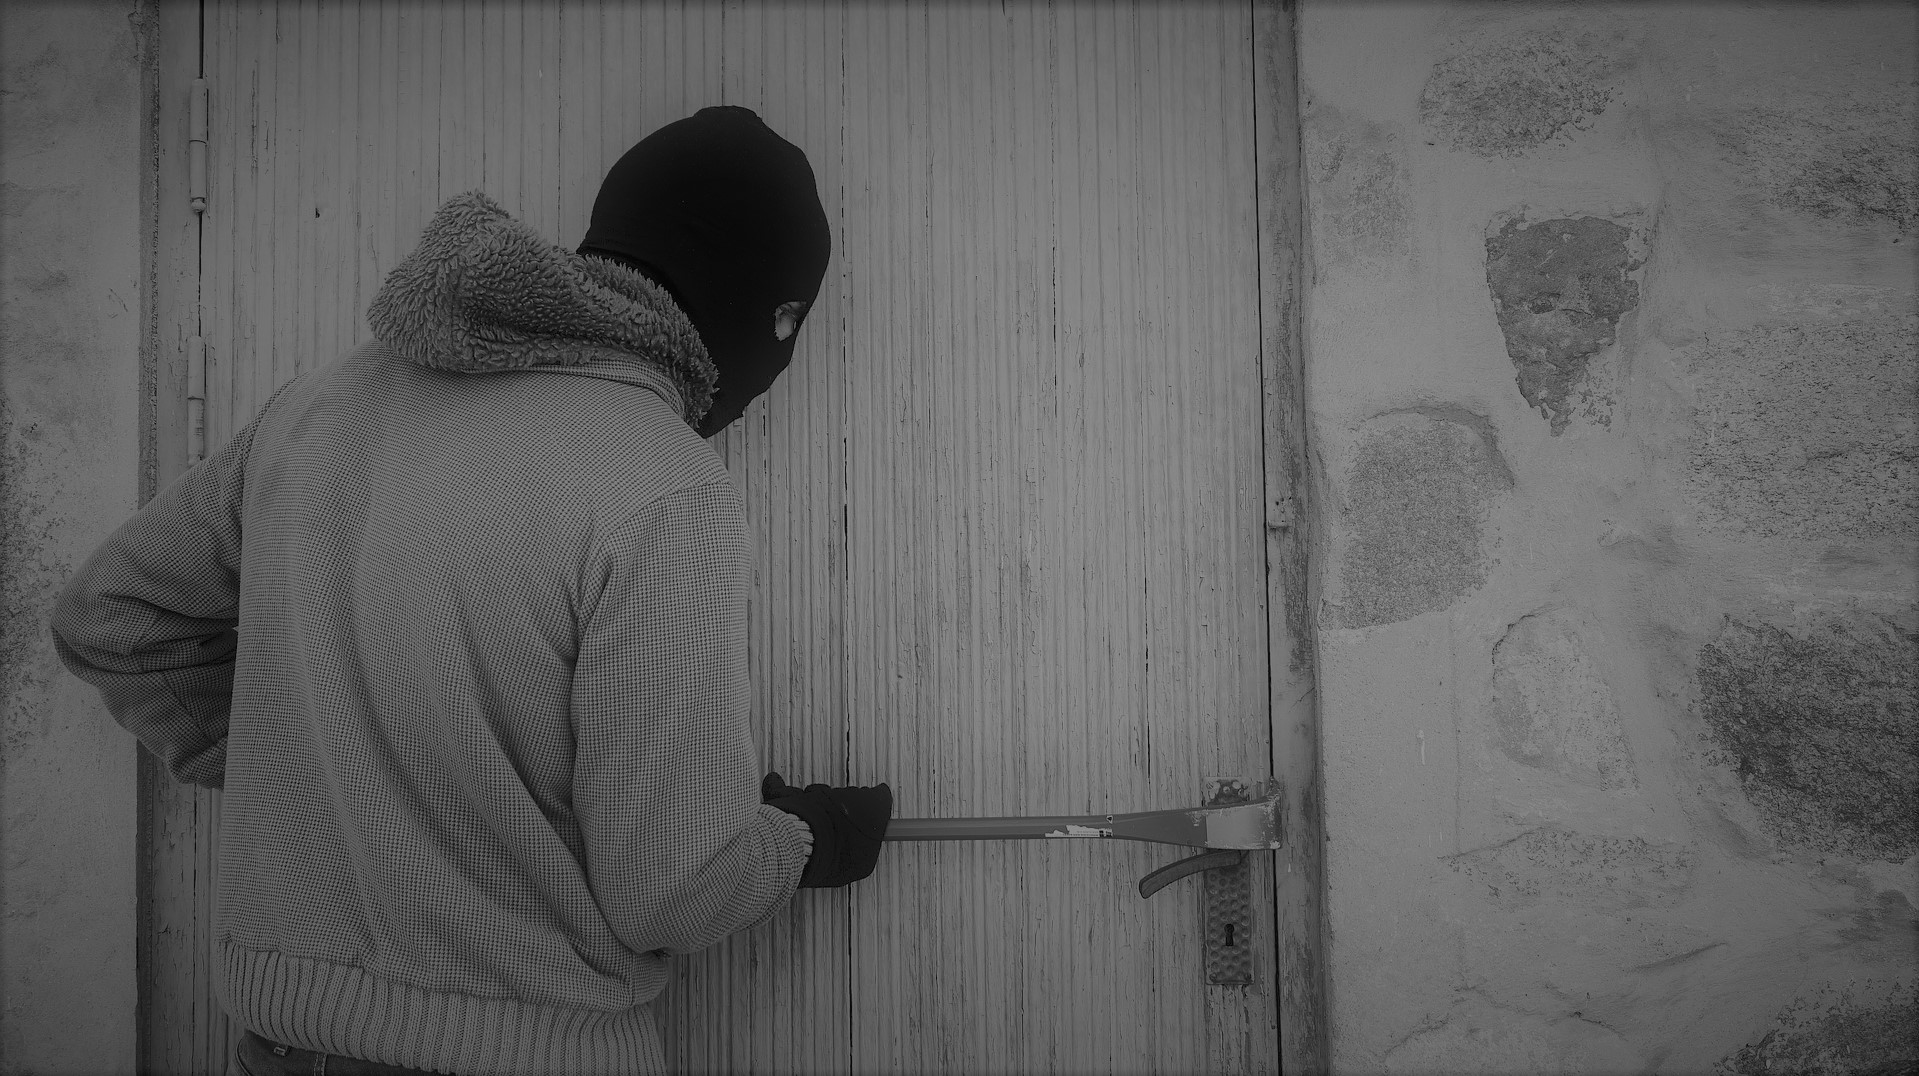 Thief, crime, burglar, door, black, mask